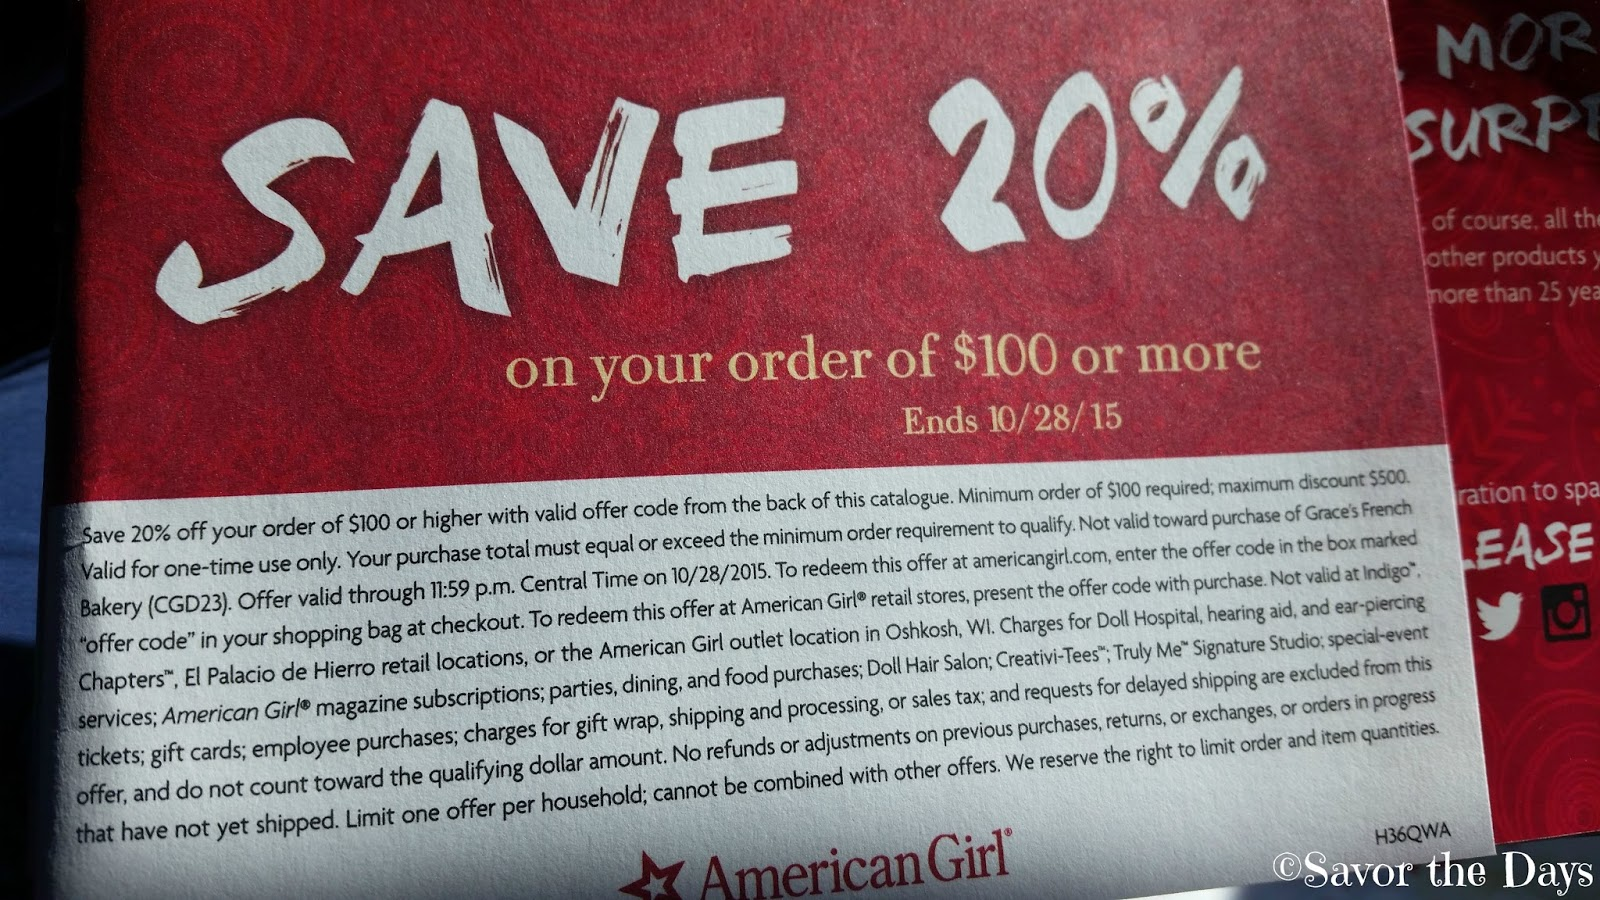 American girl coupons discounts